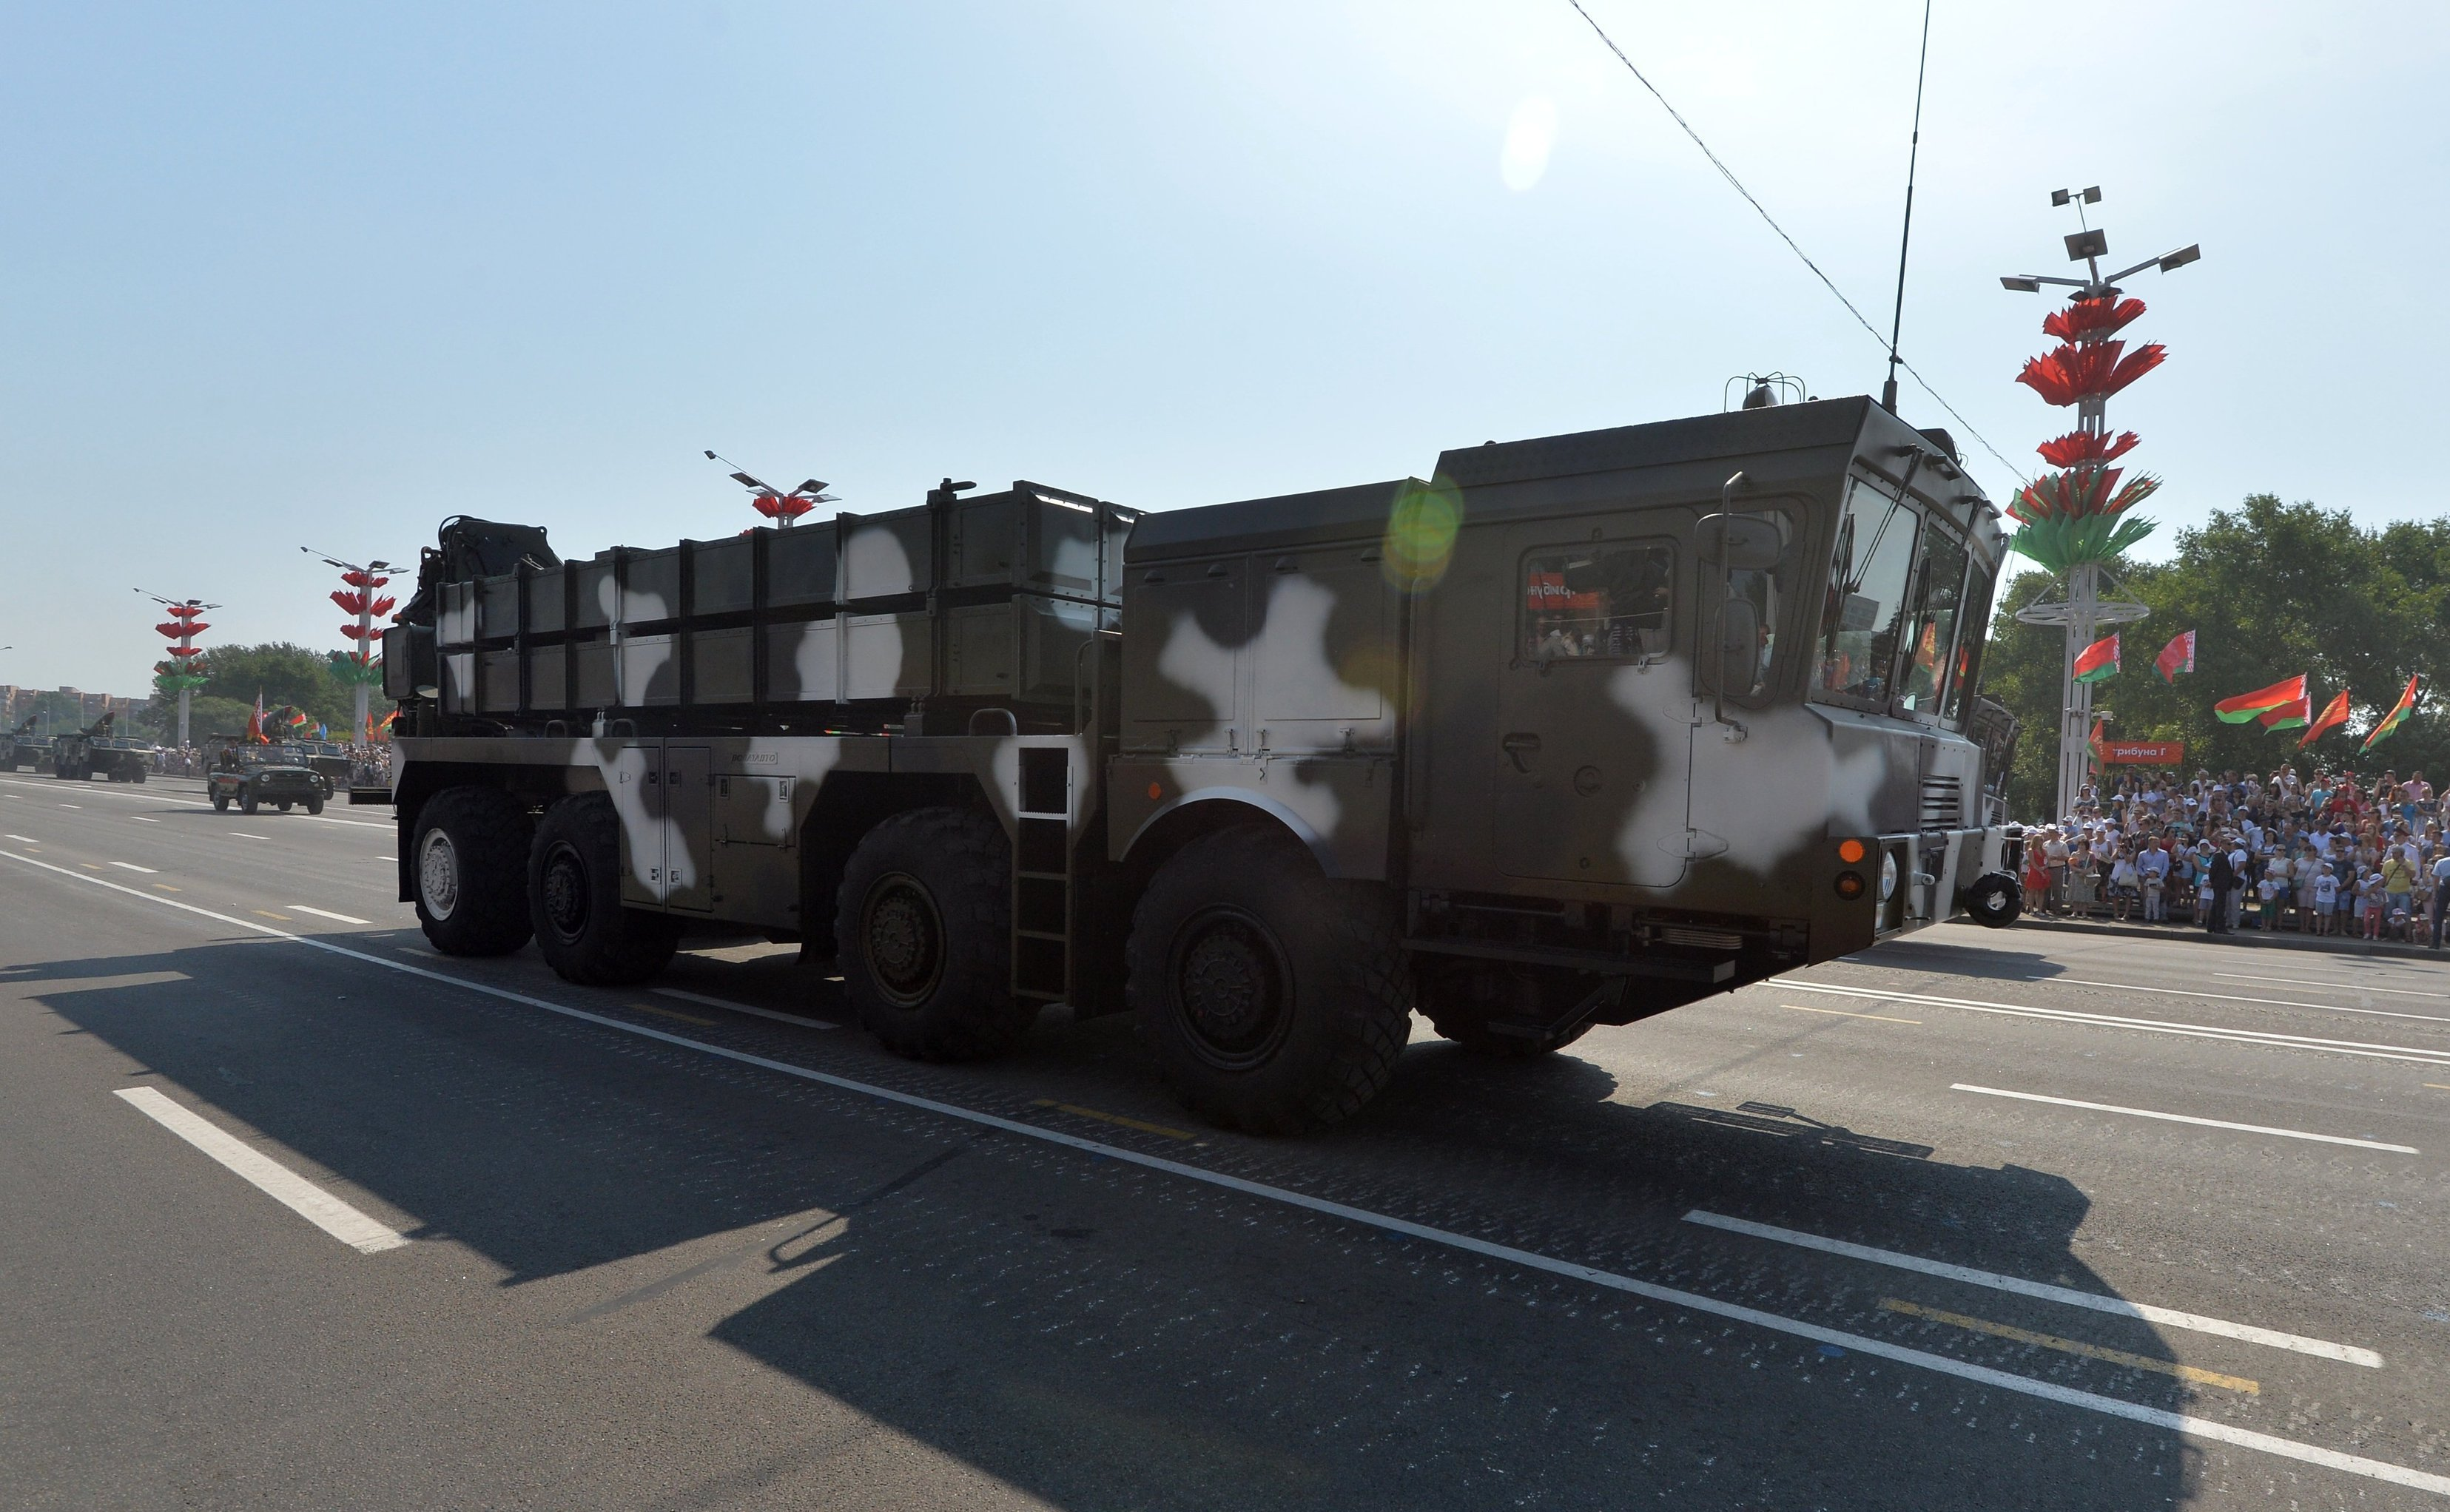 Polonez MRLS at the Belarusian Independence Day parade in Minsk.